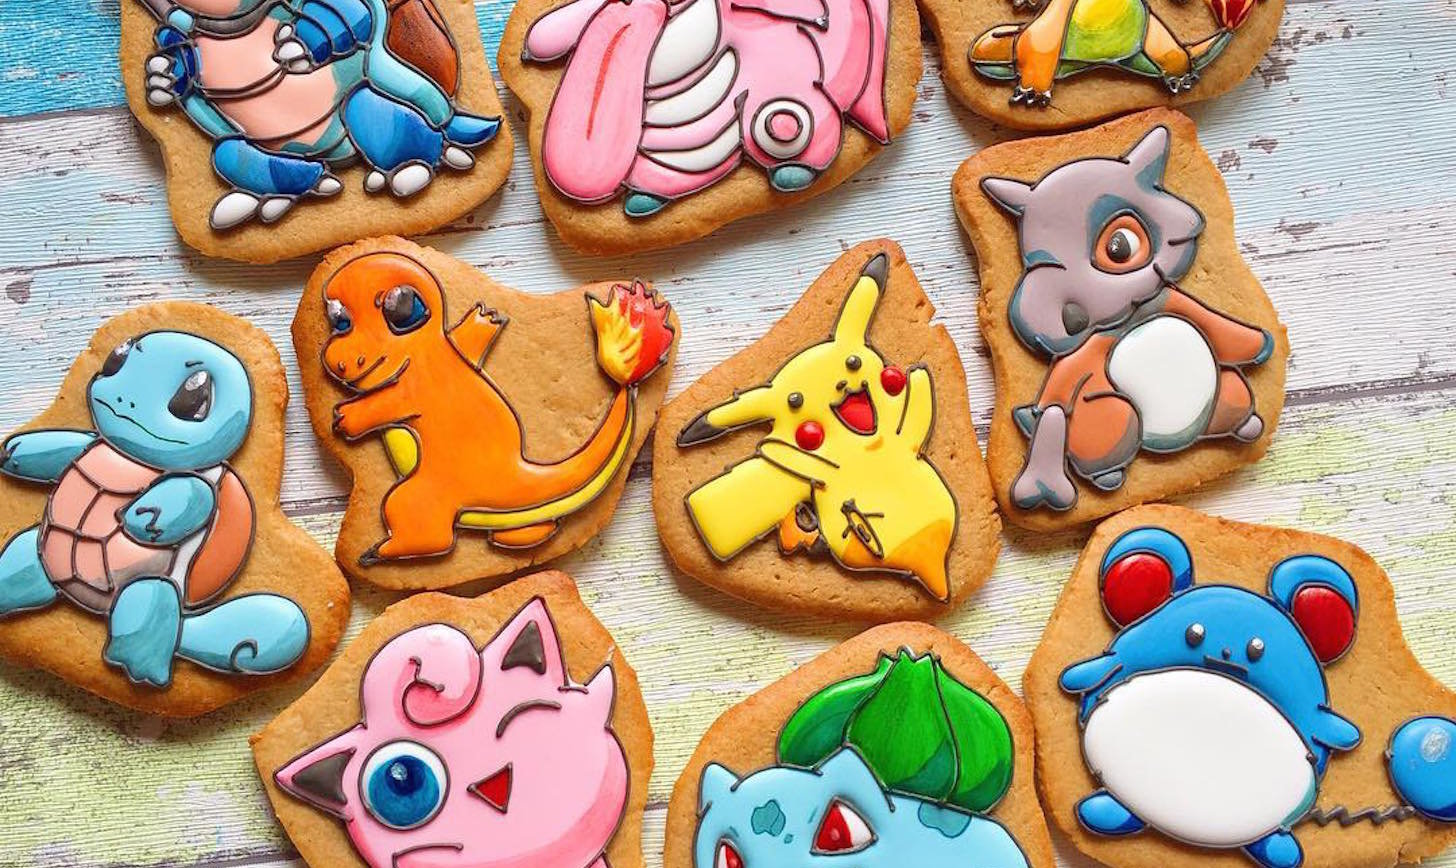 \'Pokémon\' Desserts So Delicious-Looking You\'ll Wanna Eat \'Em All